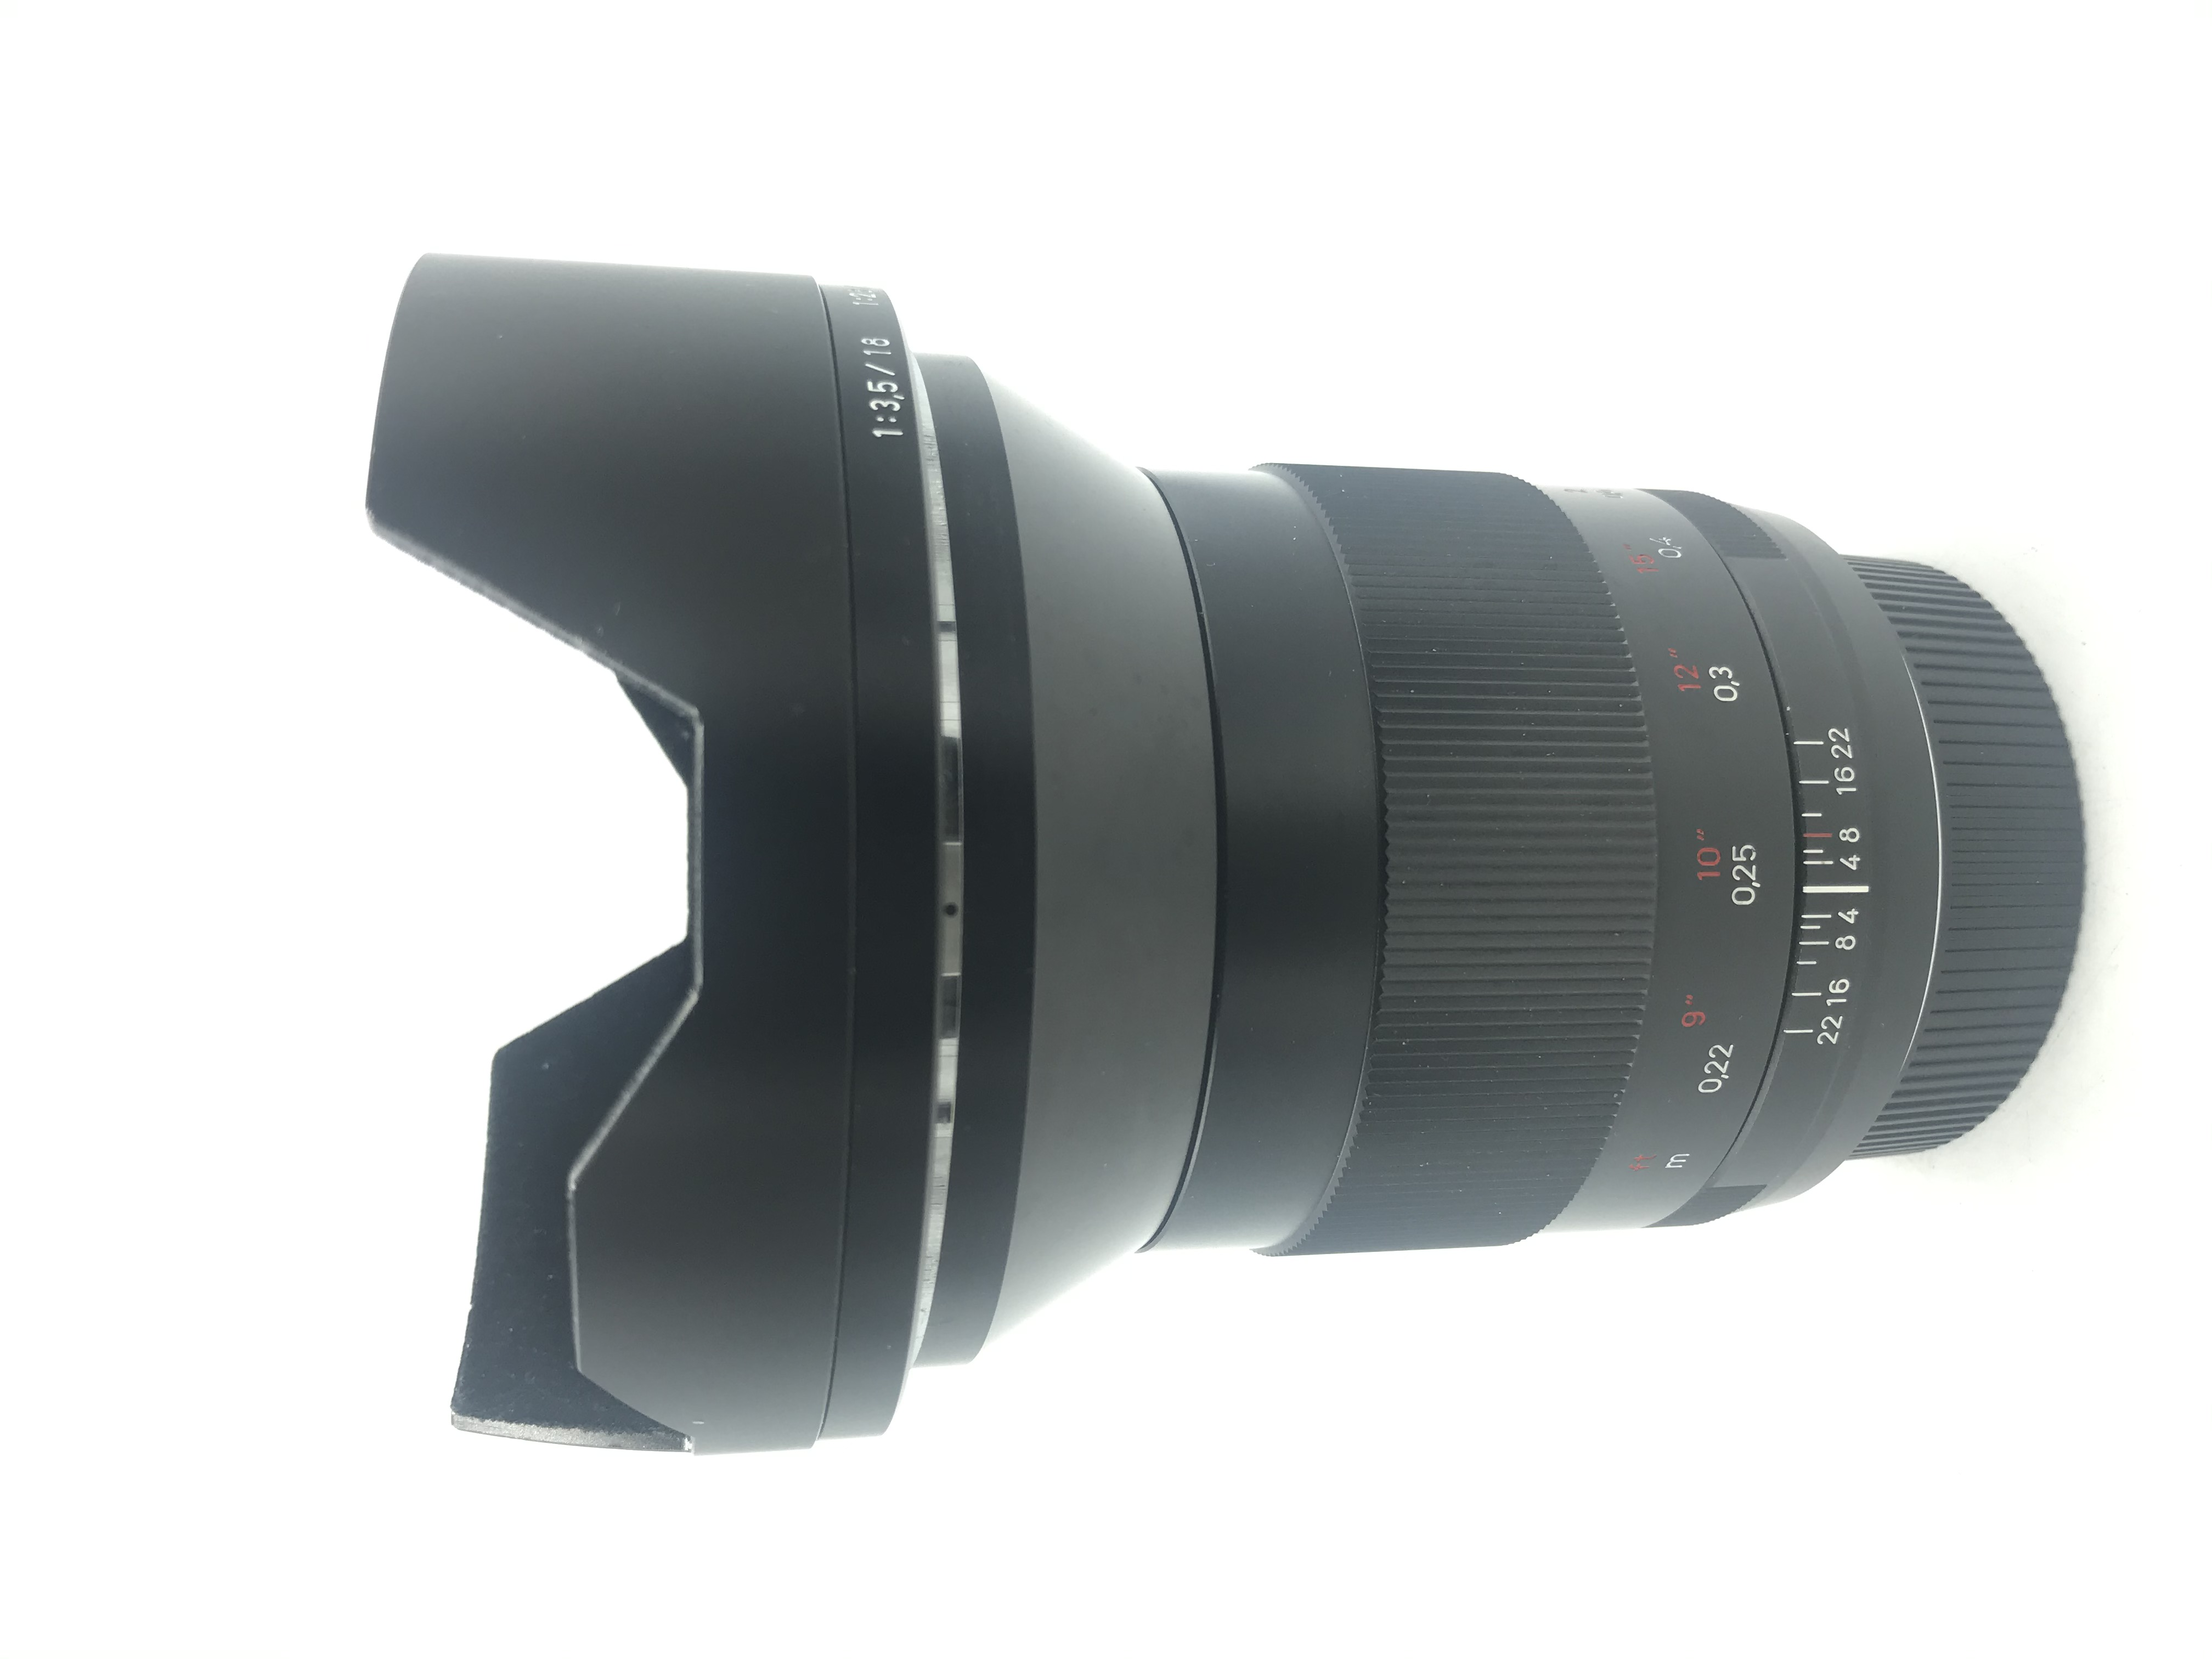 USED Zeiss 21mm F2.8 Distagon T* ZE Lens (Canon Mount)